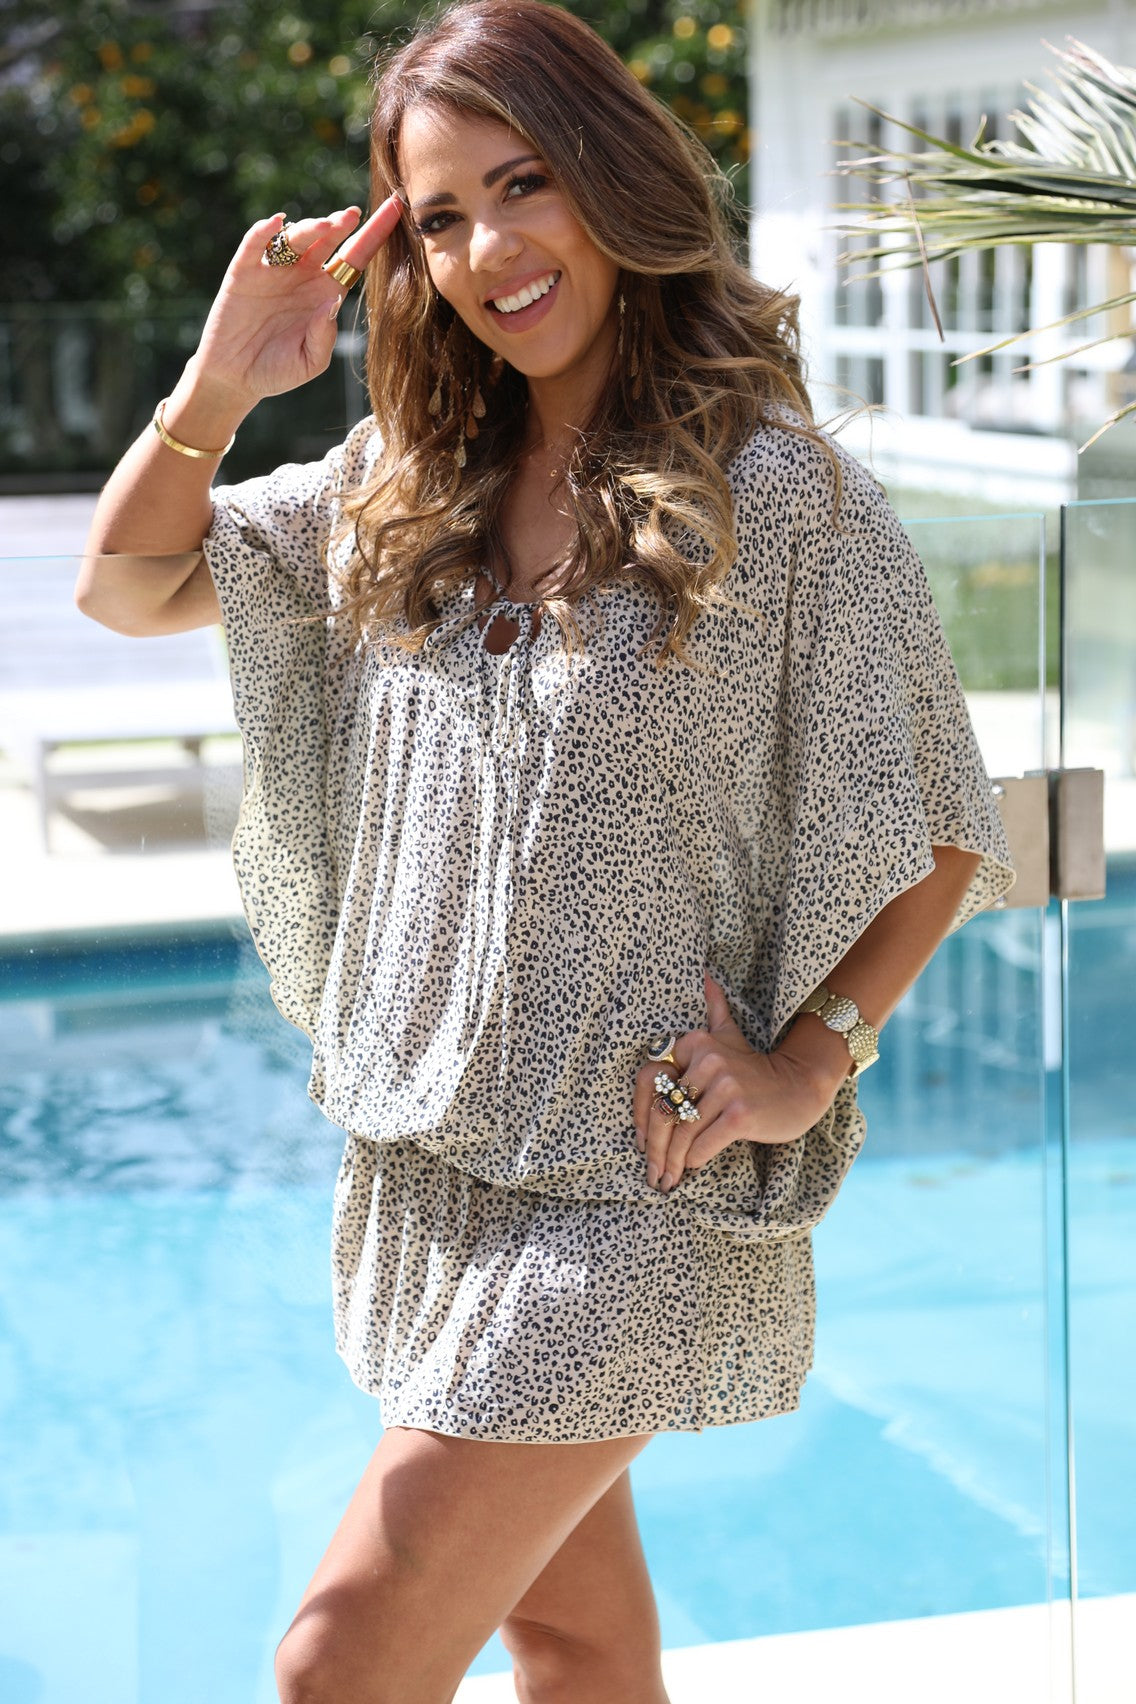 Beach Baby Kaftan - Small Leopard Print Cream & Black